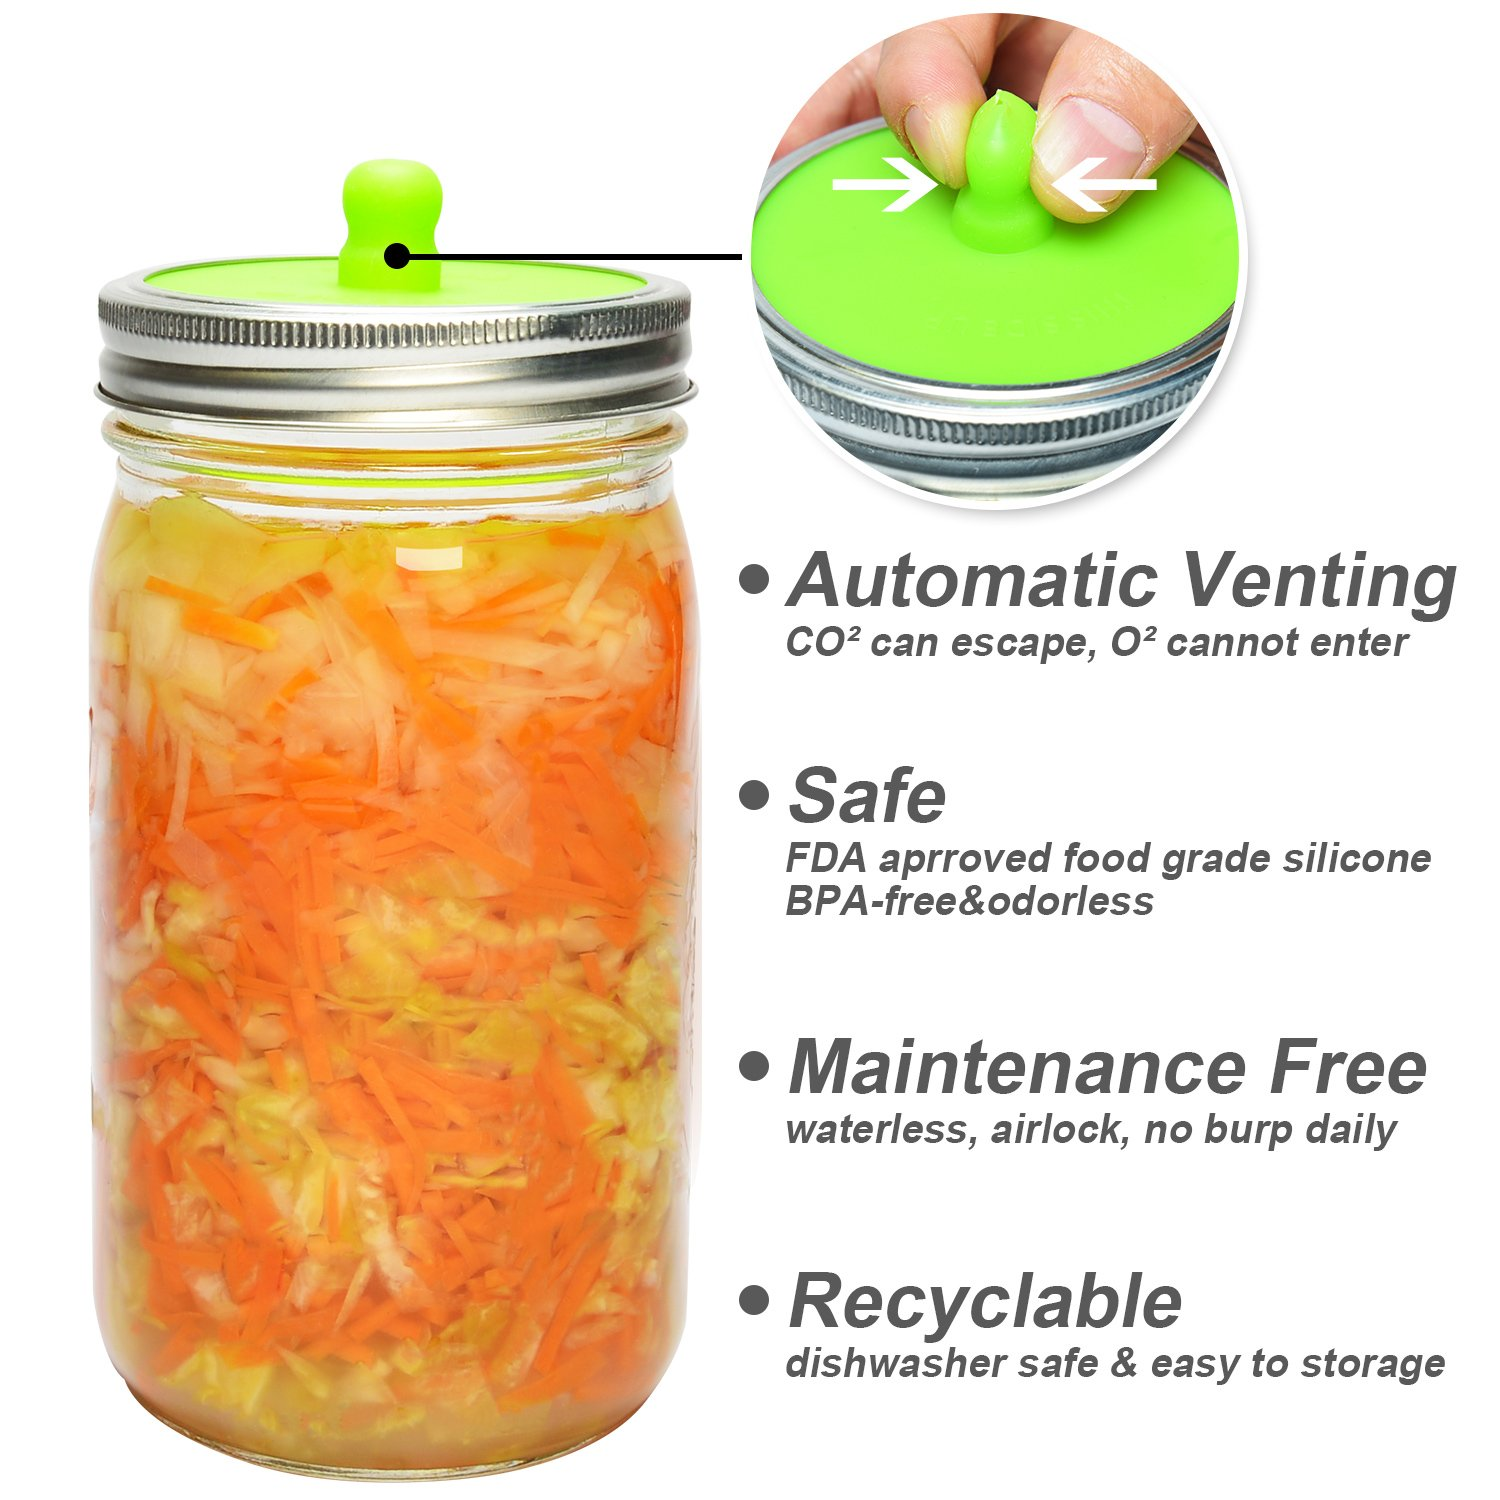 6-Pack Waterless Airlock Fermentation Lids for Wide Mouth Mason Jars, Mold Free, Food-Grade Silicone Easy Fermenting Lids for Sauerkraut, Kimchi, Pickles or Any Fermented Probiotic Food (3 Colors) by Siliware (Image #2)